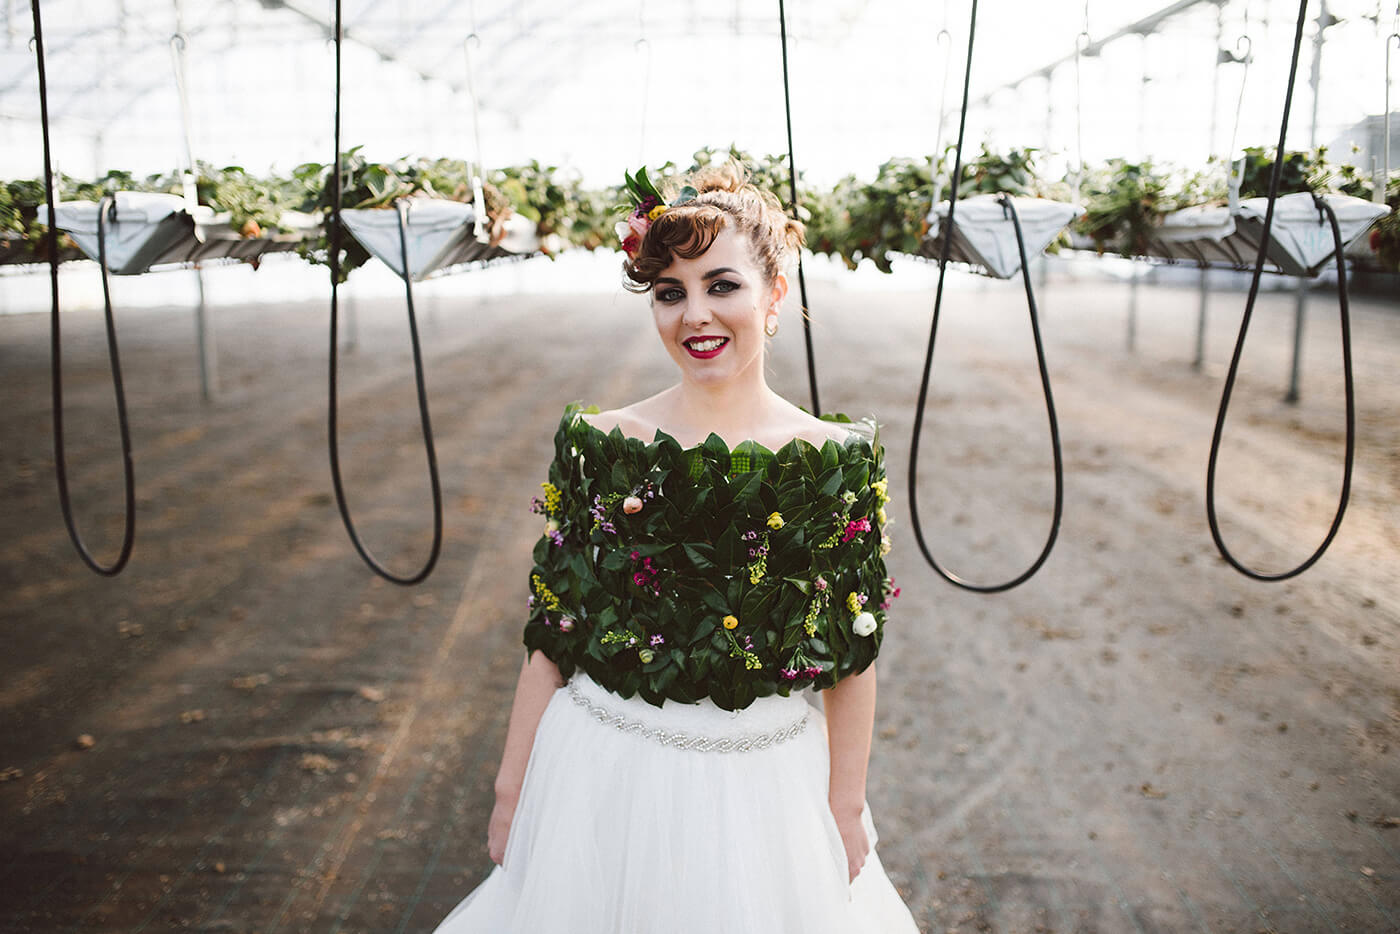 roma-organizacao-eventos-editorial-mid-century-modern-wedding-in-a-strawberry-field-22